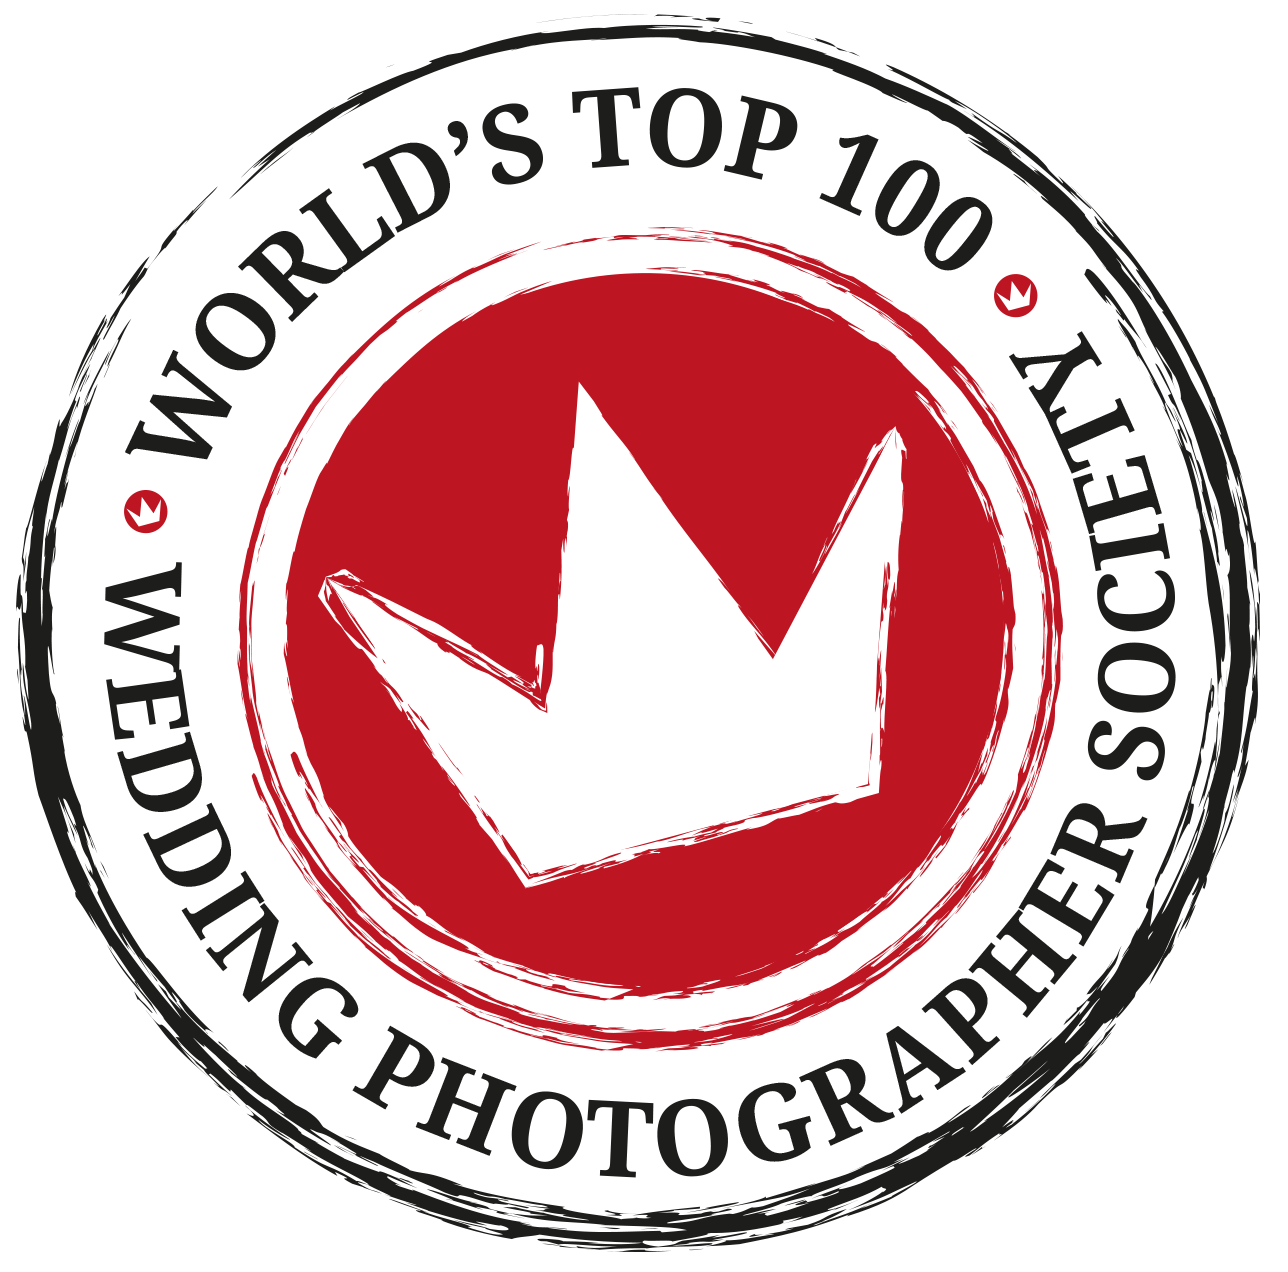 TOP100-best-wedding-photographers-worldwide